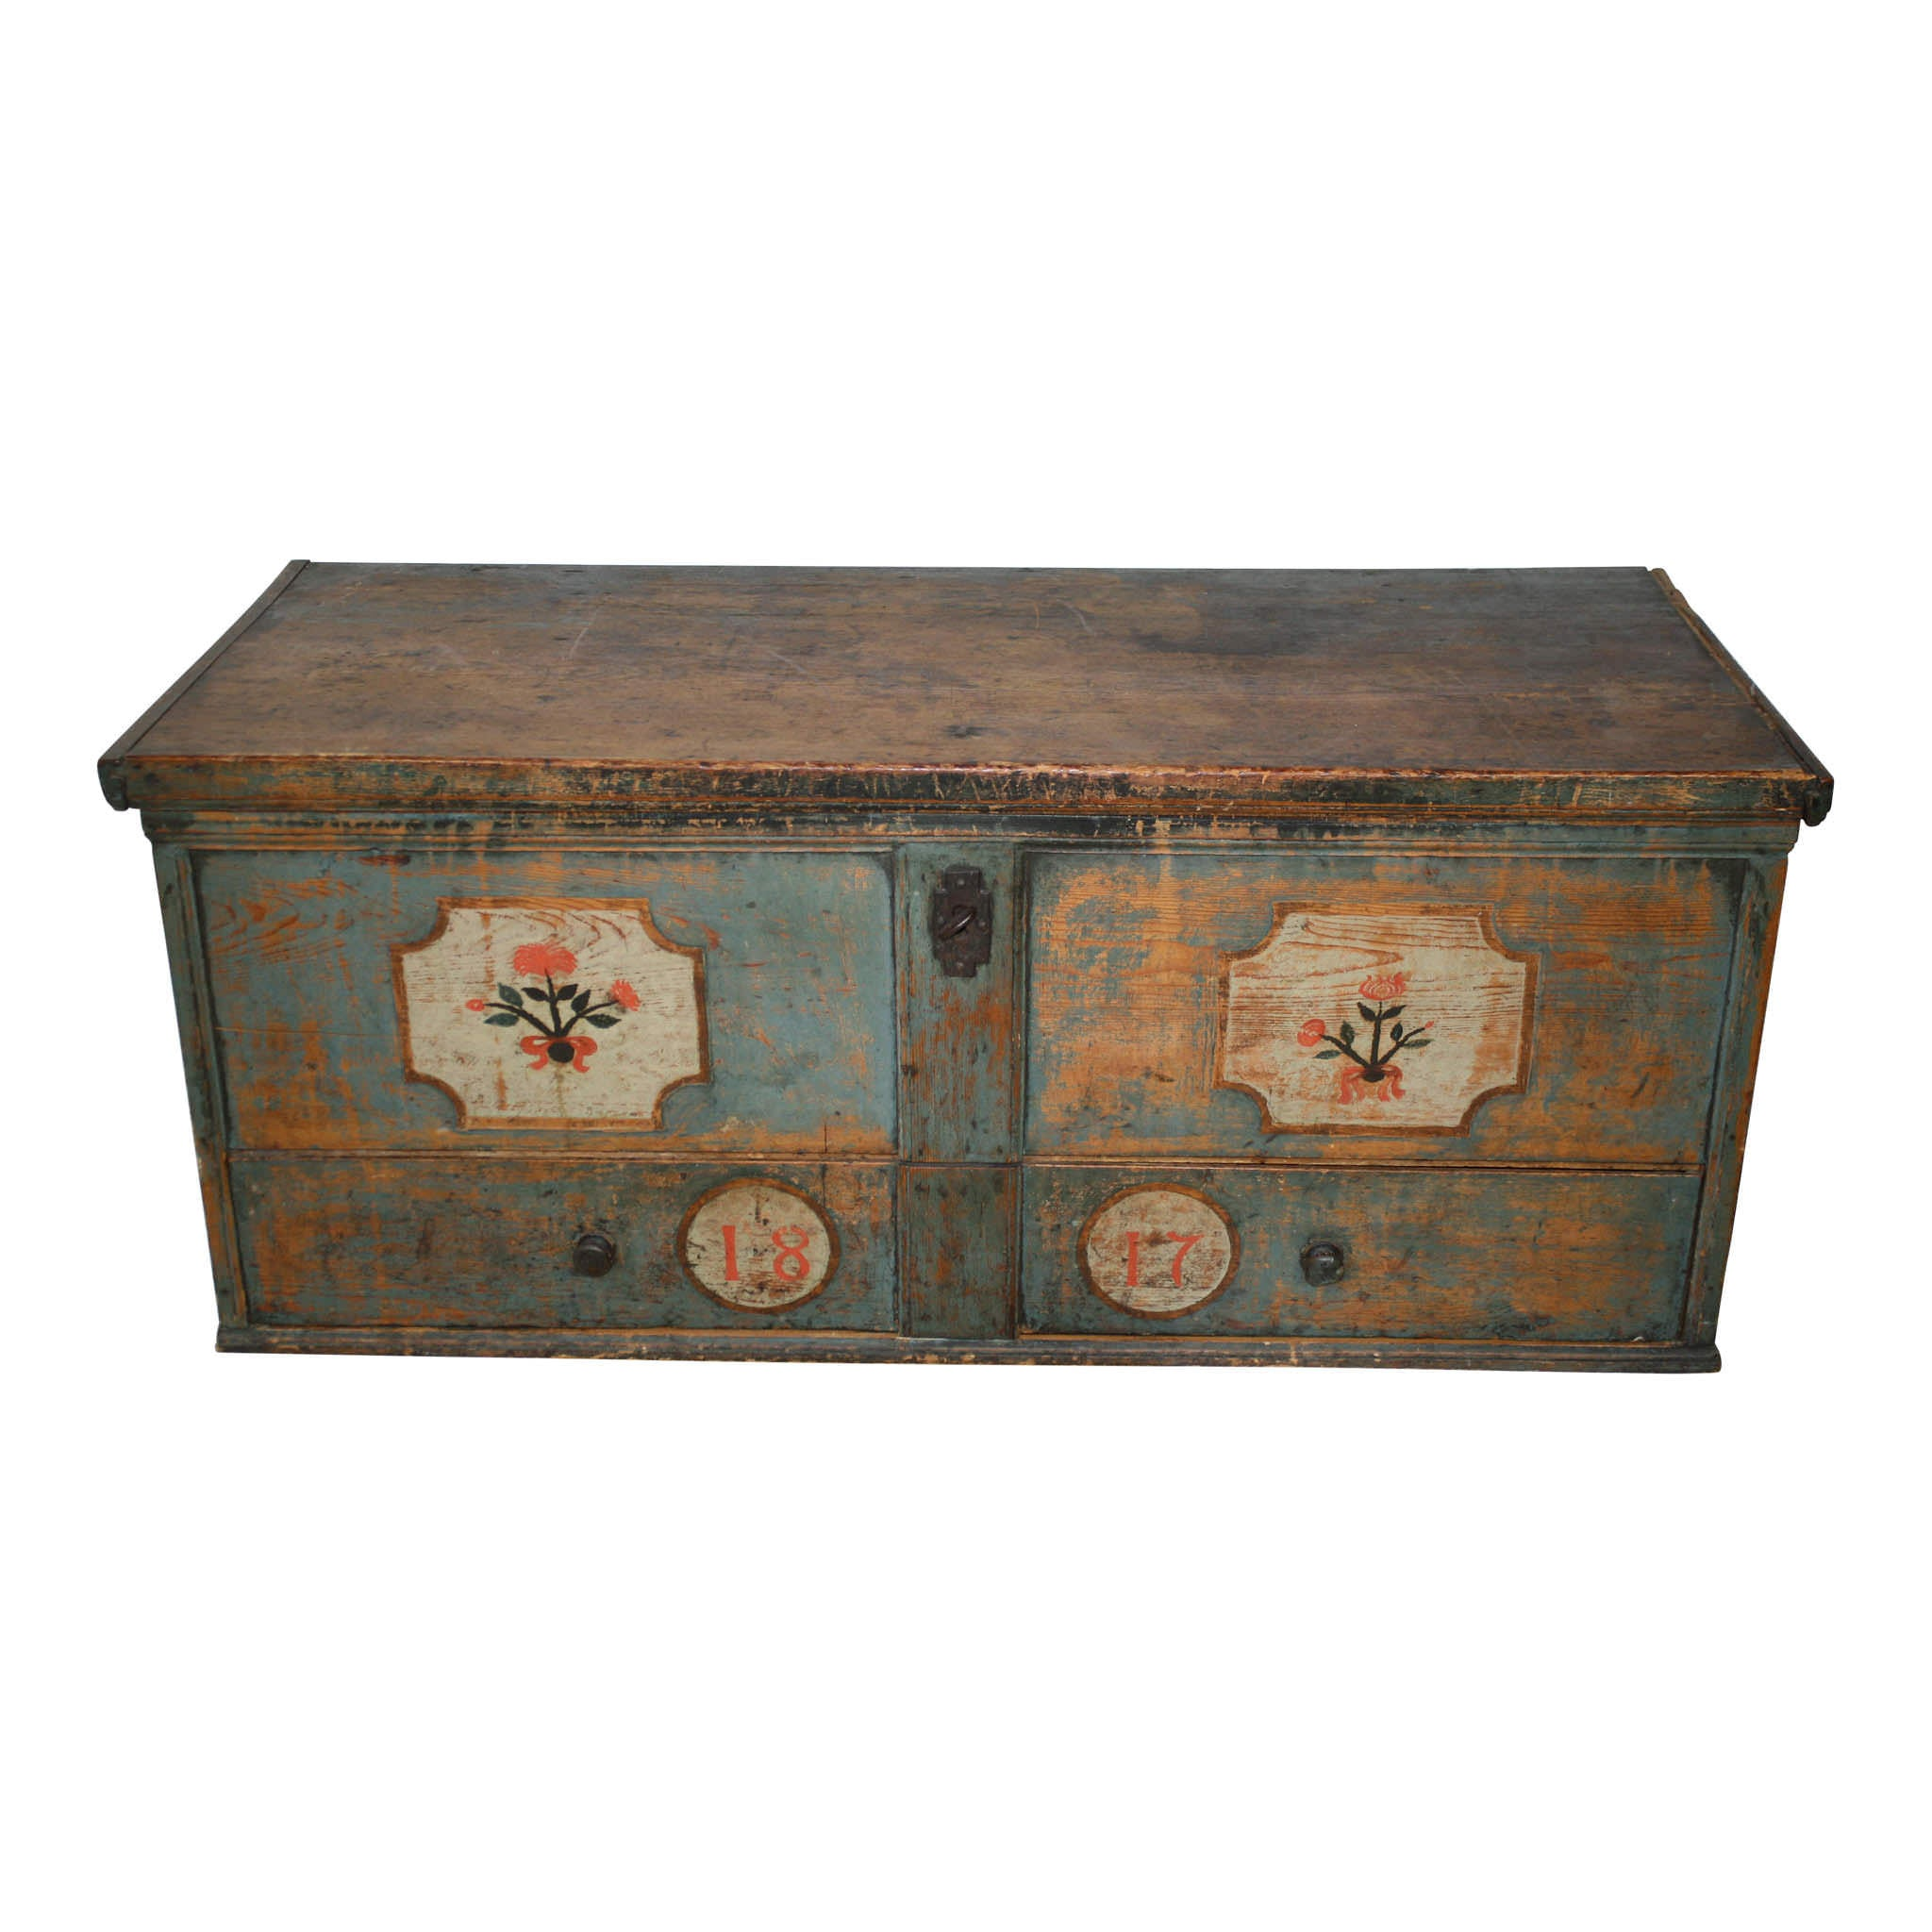 Large Painted Trunk with Drawer